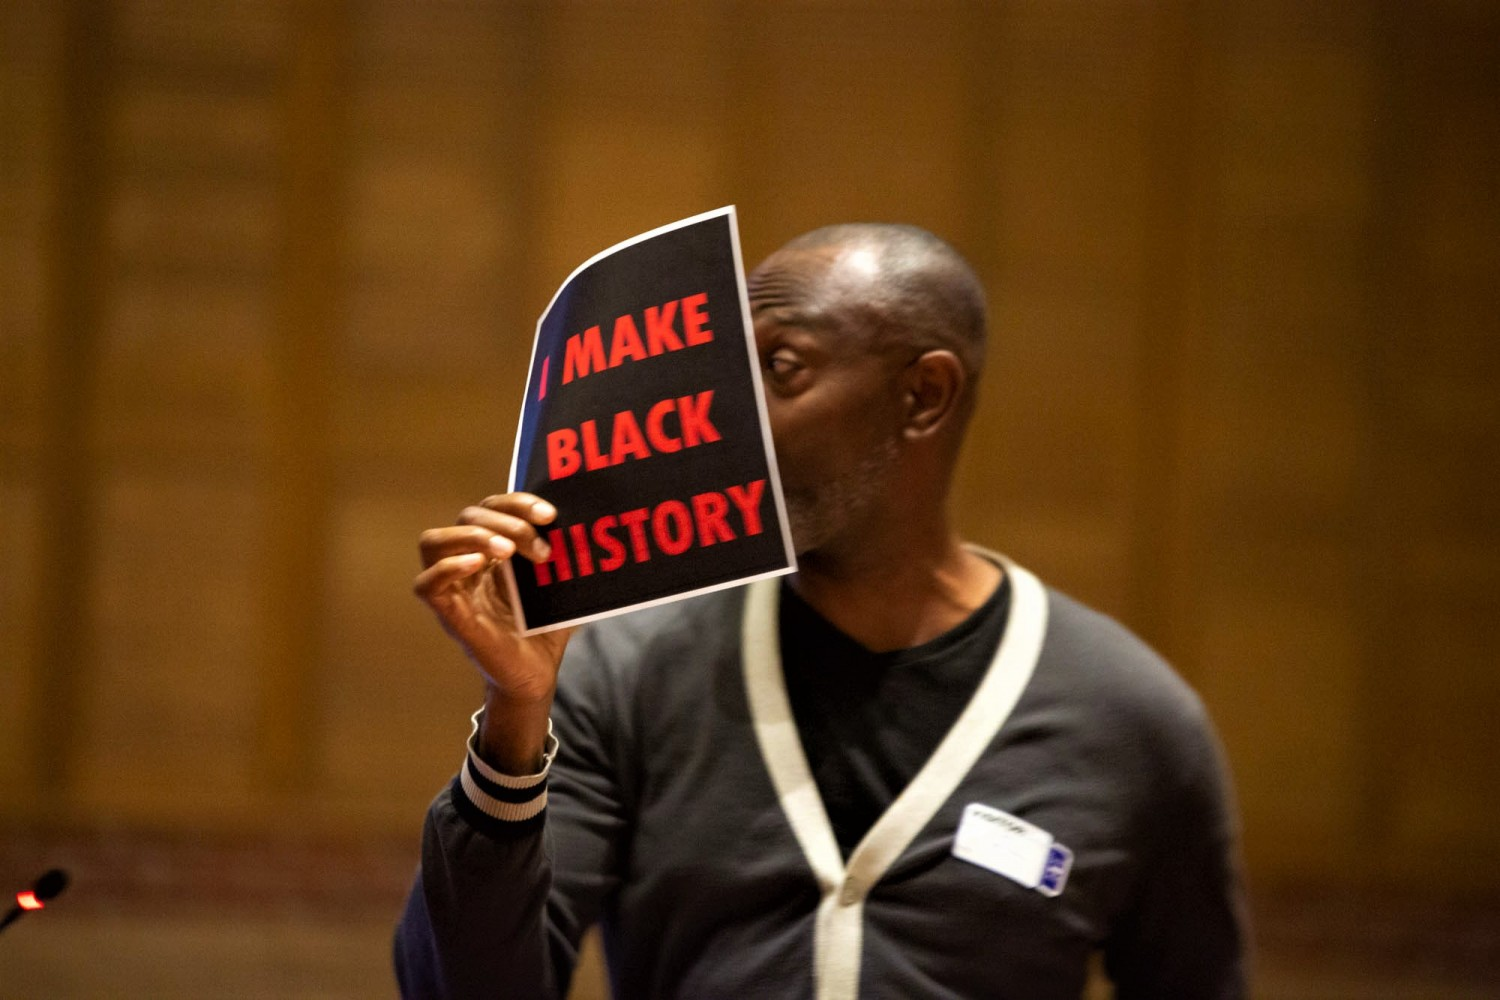 Advocates rally, regroup after progress to eliminate anti-Black racism withinPDSB stalls